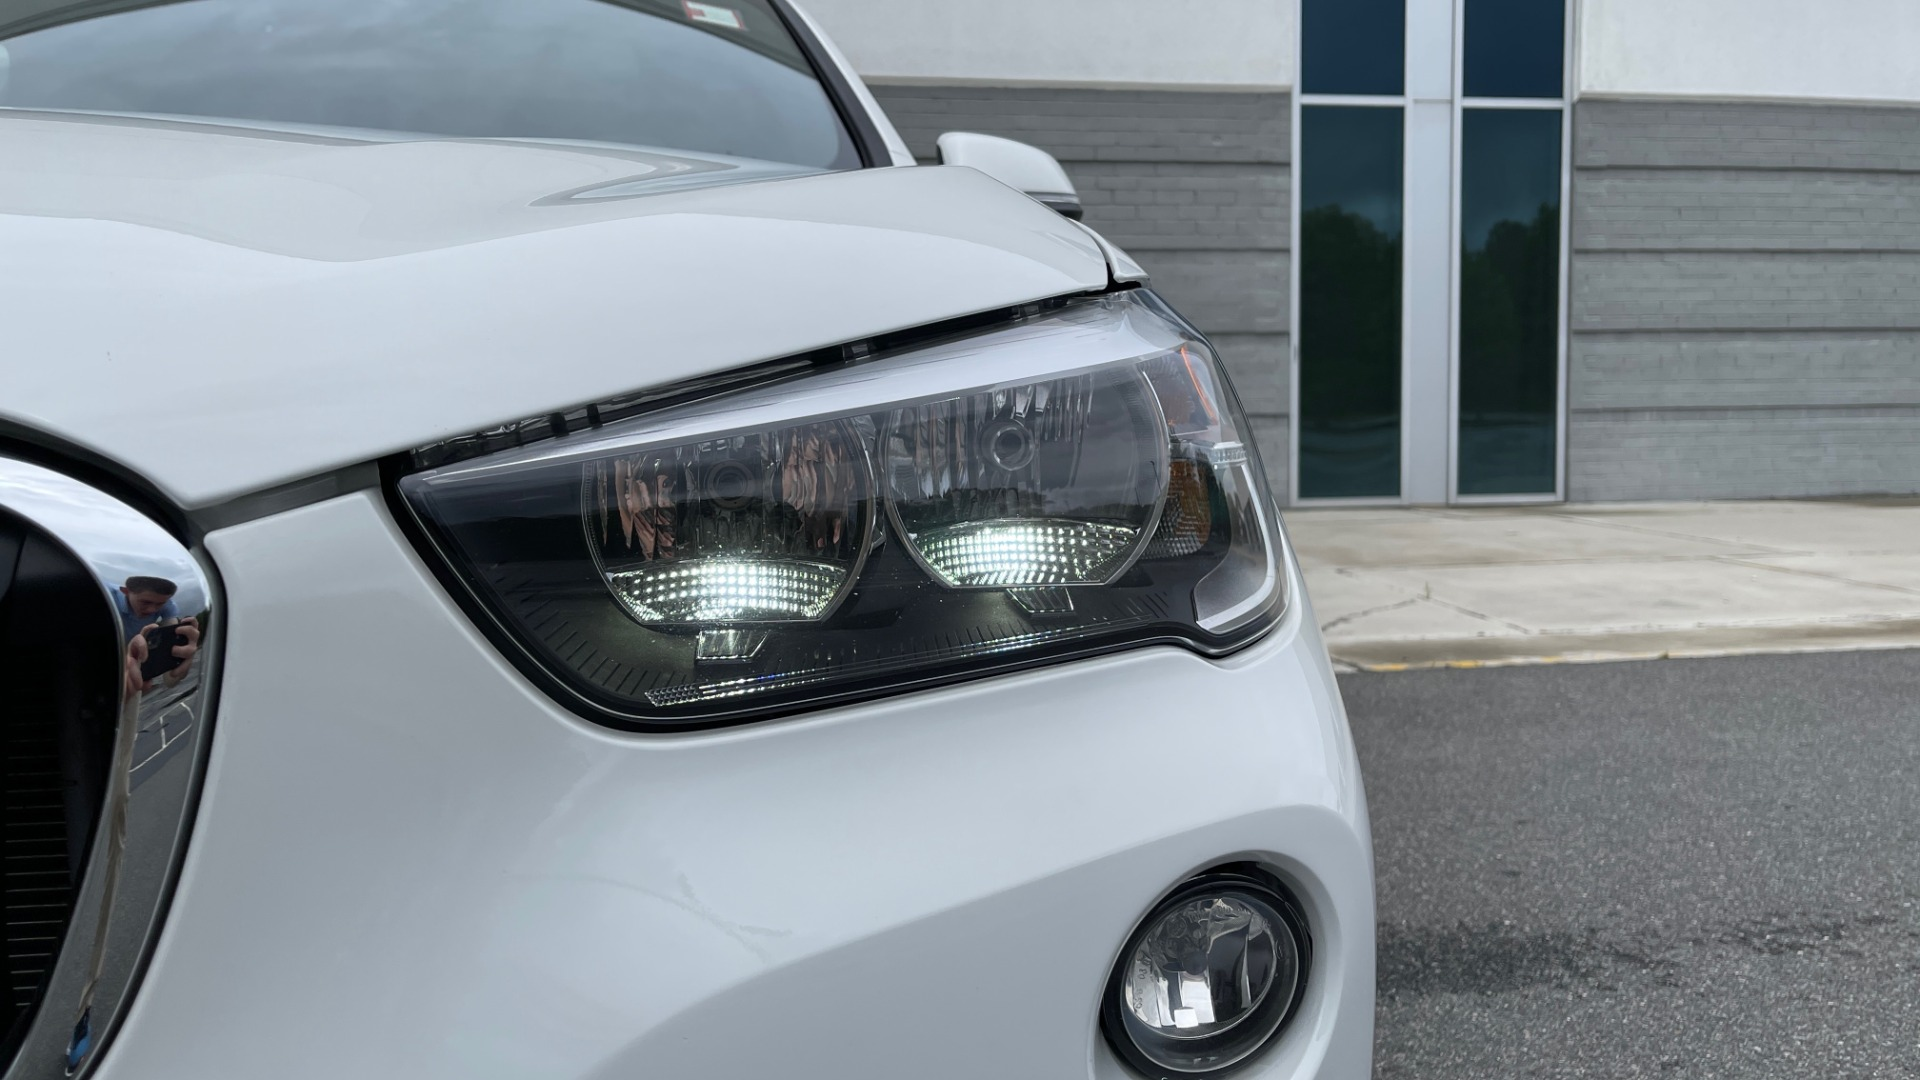 Used 2018 BMW X1 XDRIVE28I / CONV PKG / PANO-ROOF / HTD STS / PARK ASST / REARVIEW for sale $30,995 at Formula Imports in Charlotte NC 28227 14